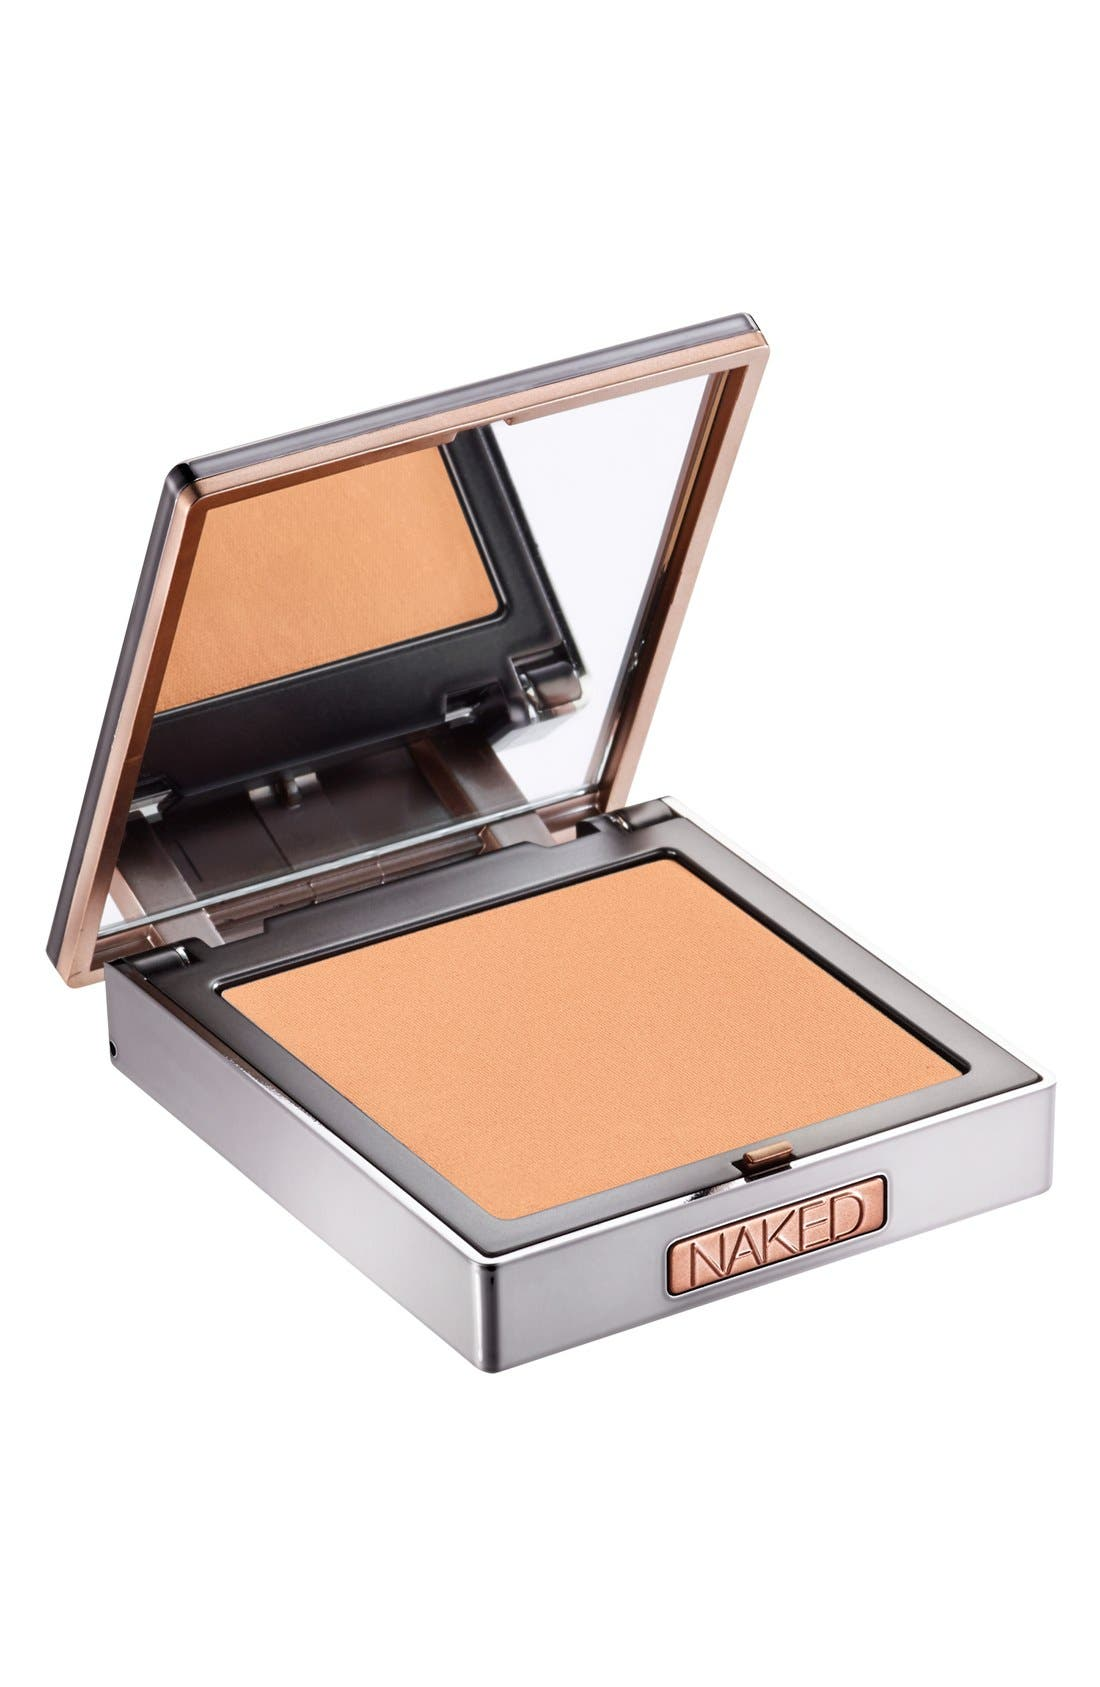 Naked Skin Ultra Definition Pressed Finishing Powder,                             Main thumbnail 1, color,                             252